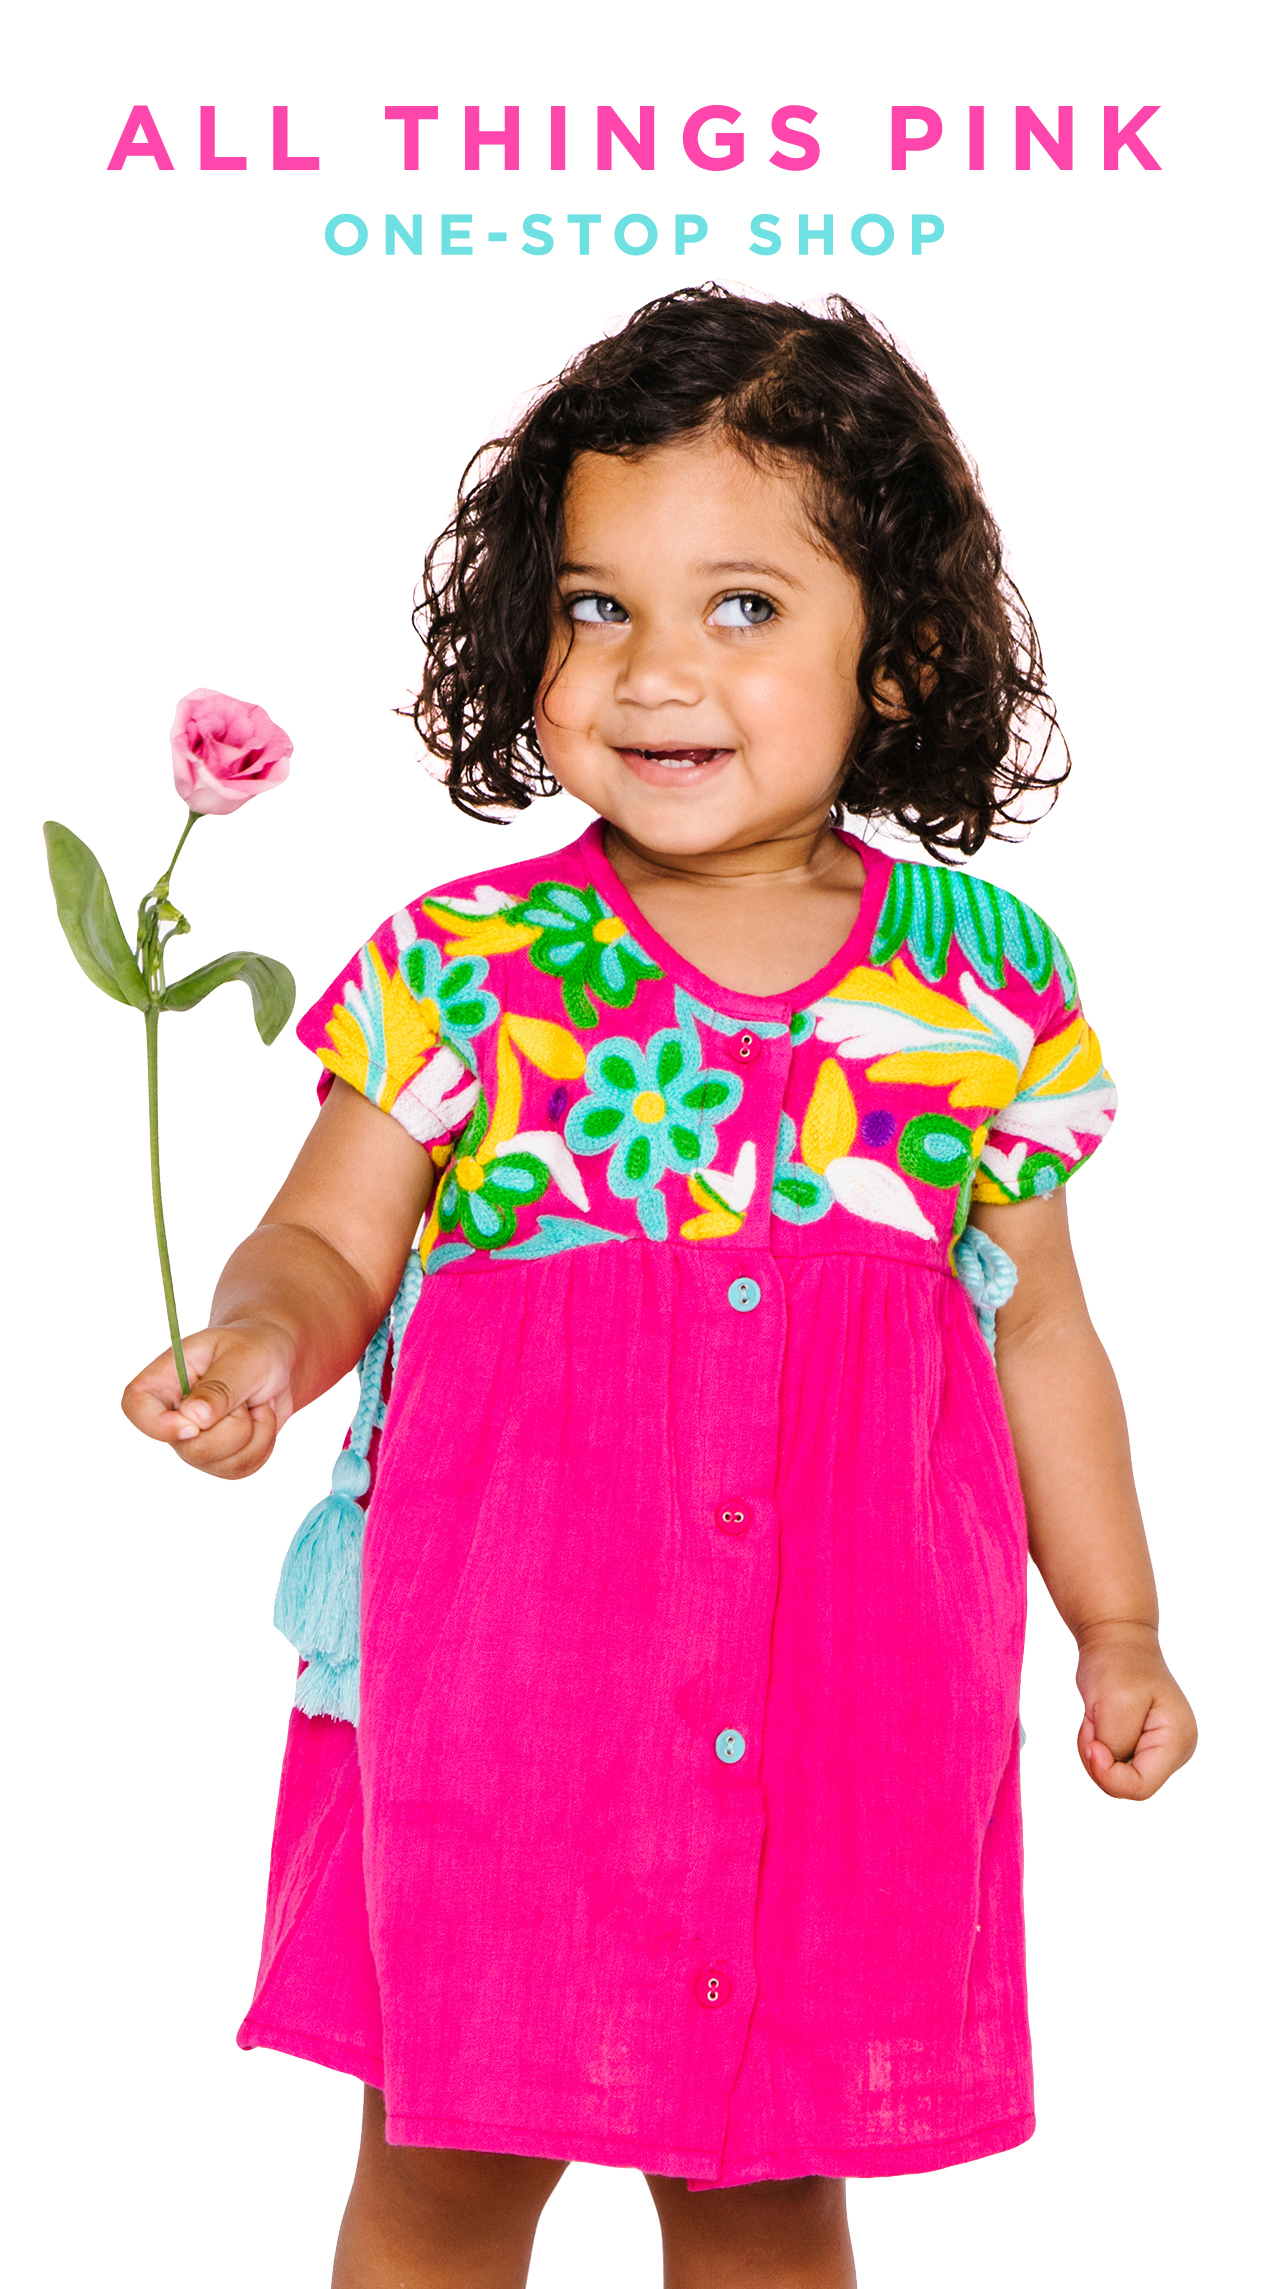 Your one stop shop to all things pink for baby girls and girls